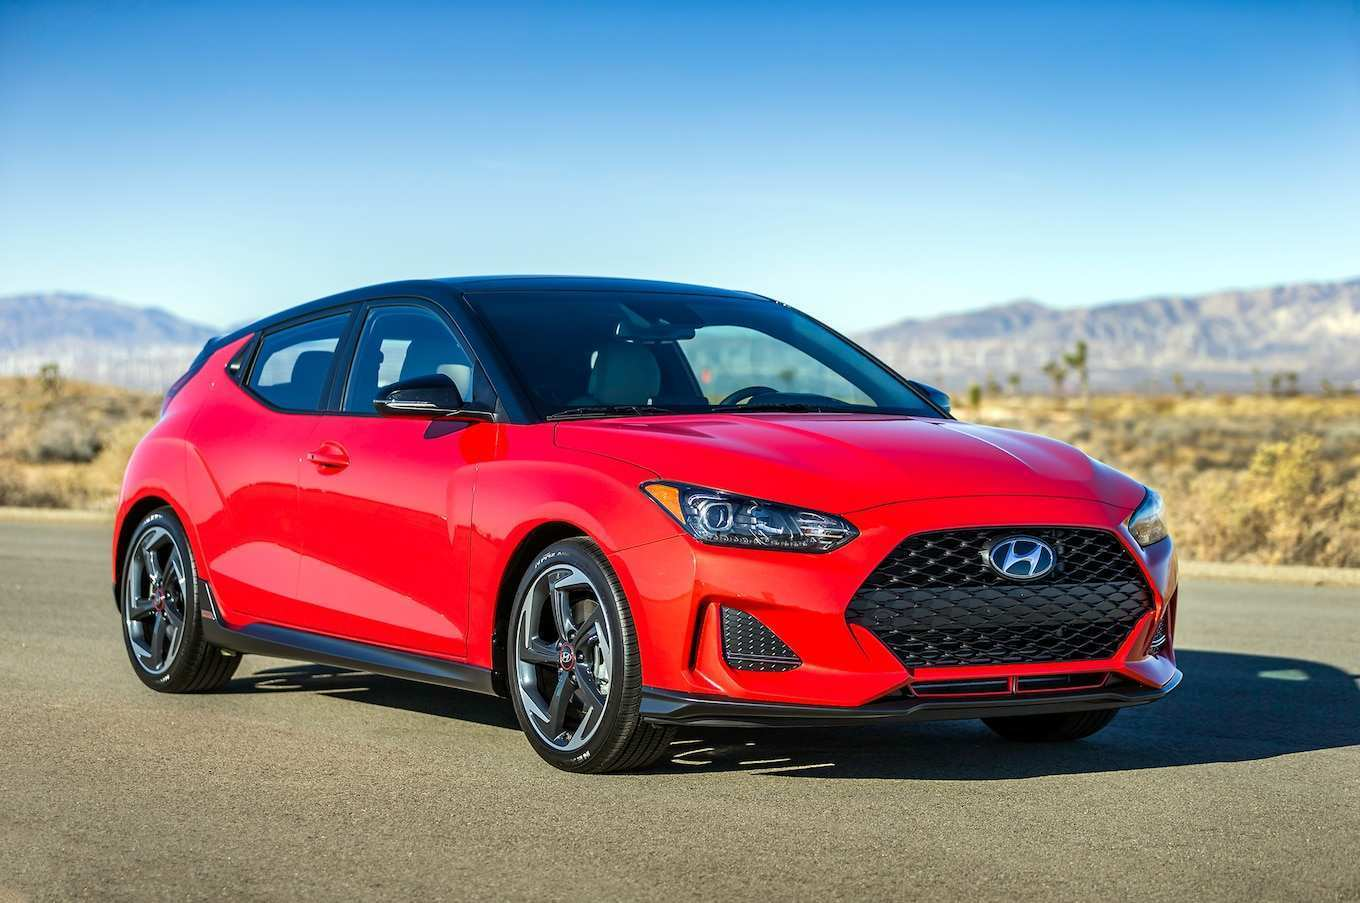 19 Great 2019 Hyundai Veloster Turbo Review Picture with 2019 Hyundai Veloster Turbo Review